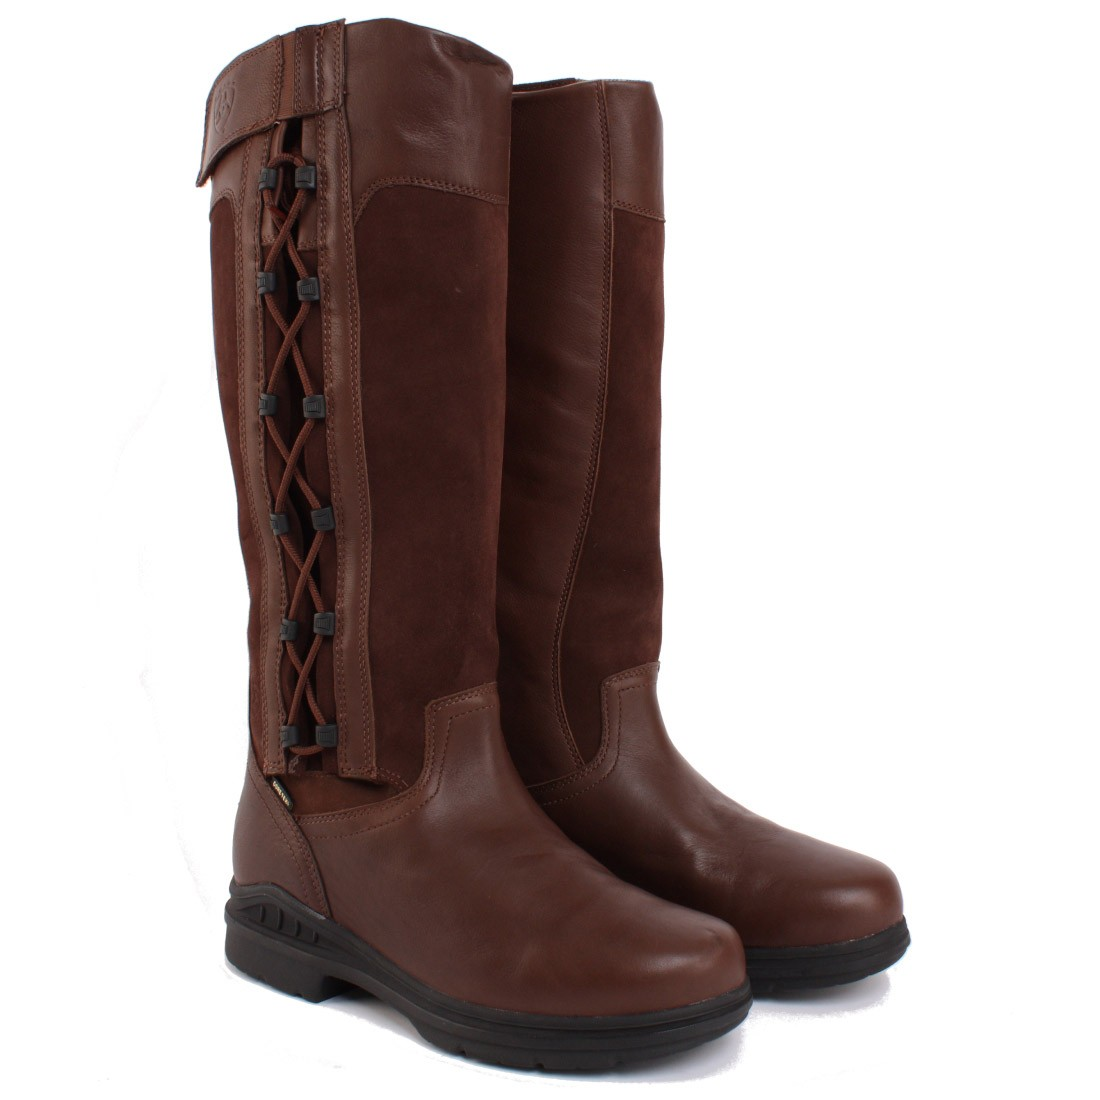 Ariat Rydal Mens Tall Country Boots Chocolate Redpost